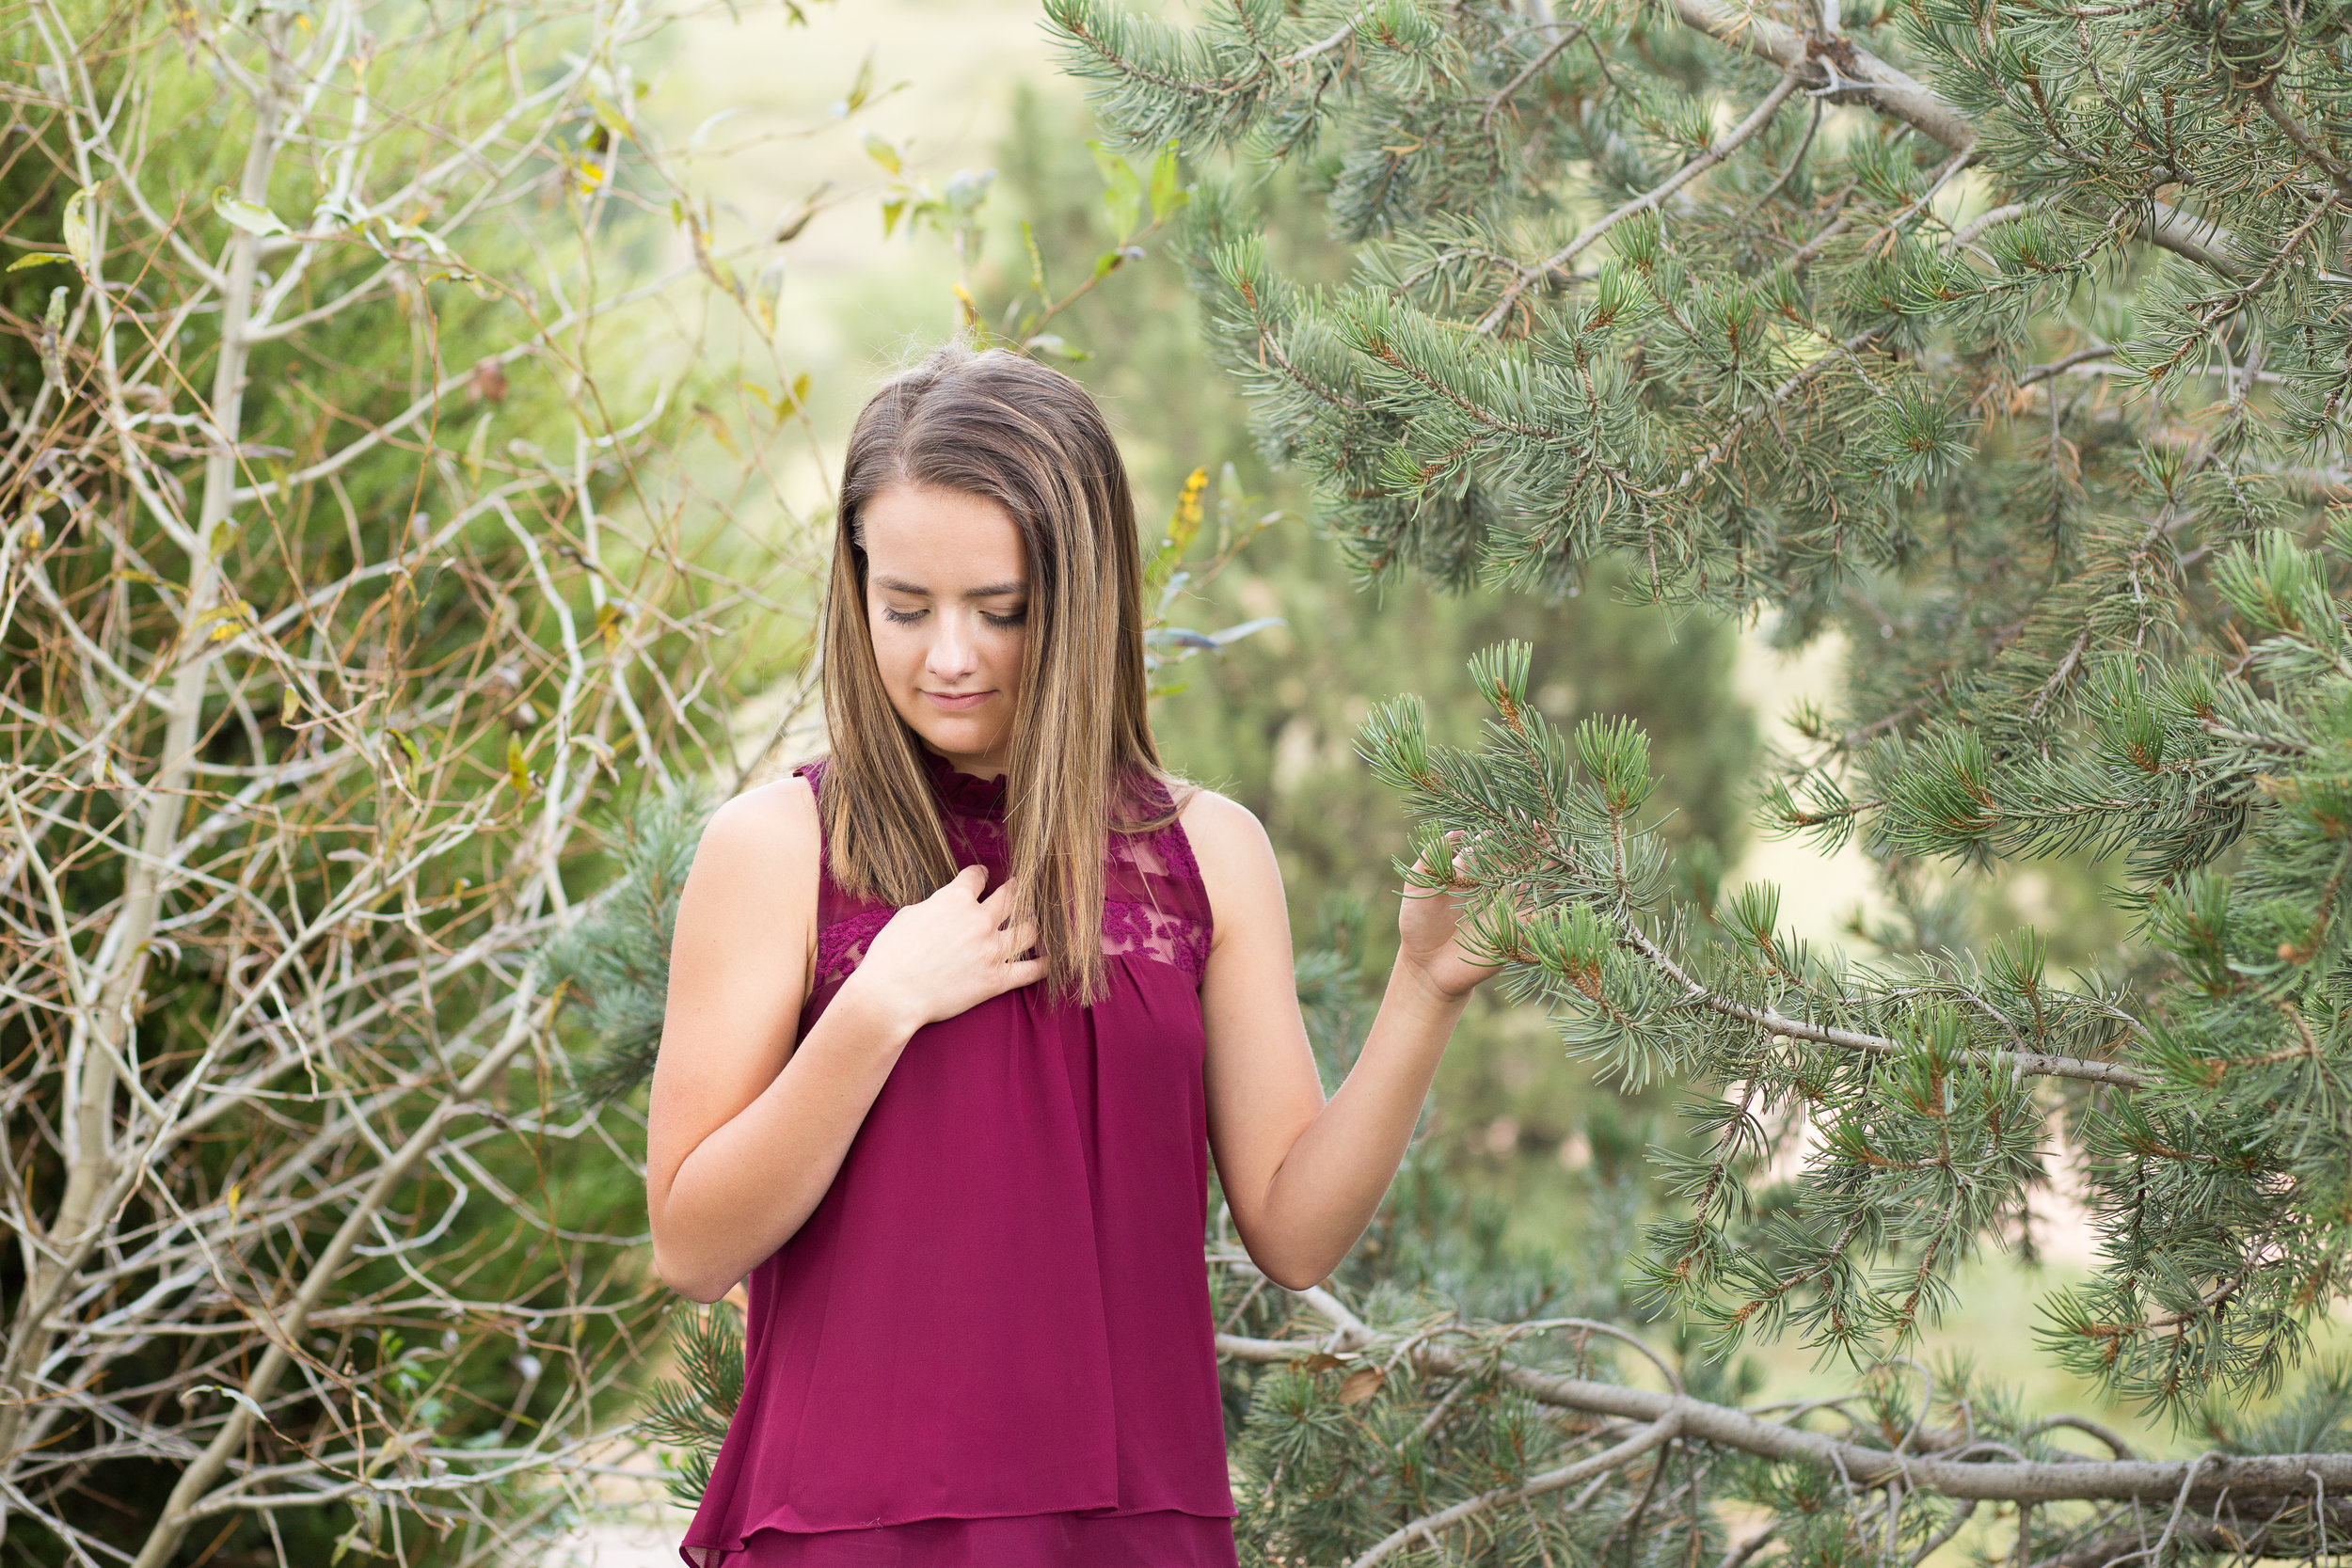 Girl holding on to pine tree branch and looking at ground Rampart High Senior Photos Stacy Carosa Photography Colorado Springs Senior Photographer at Rock Ledge Ranch